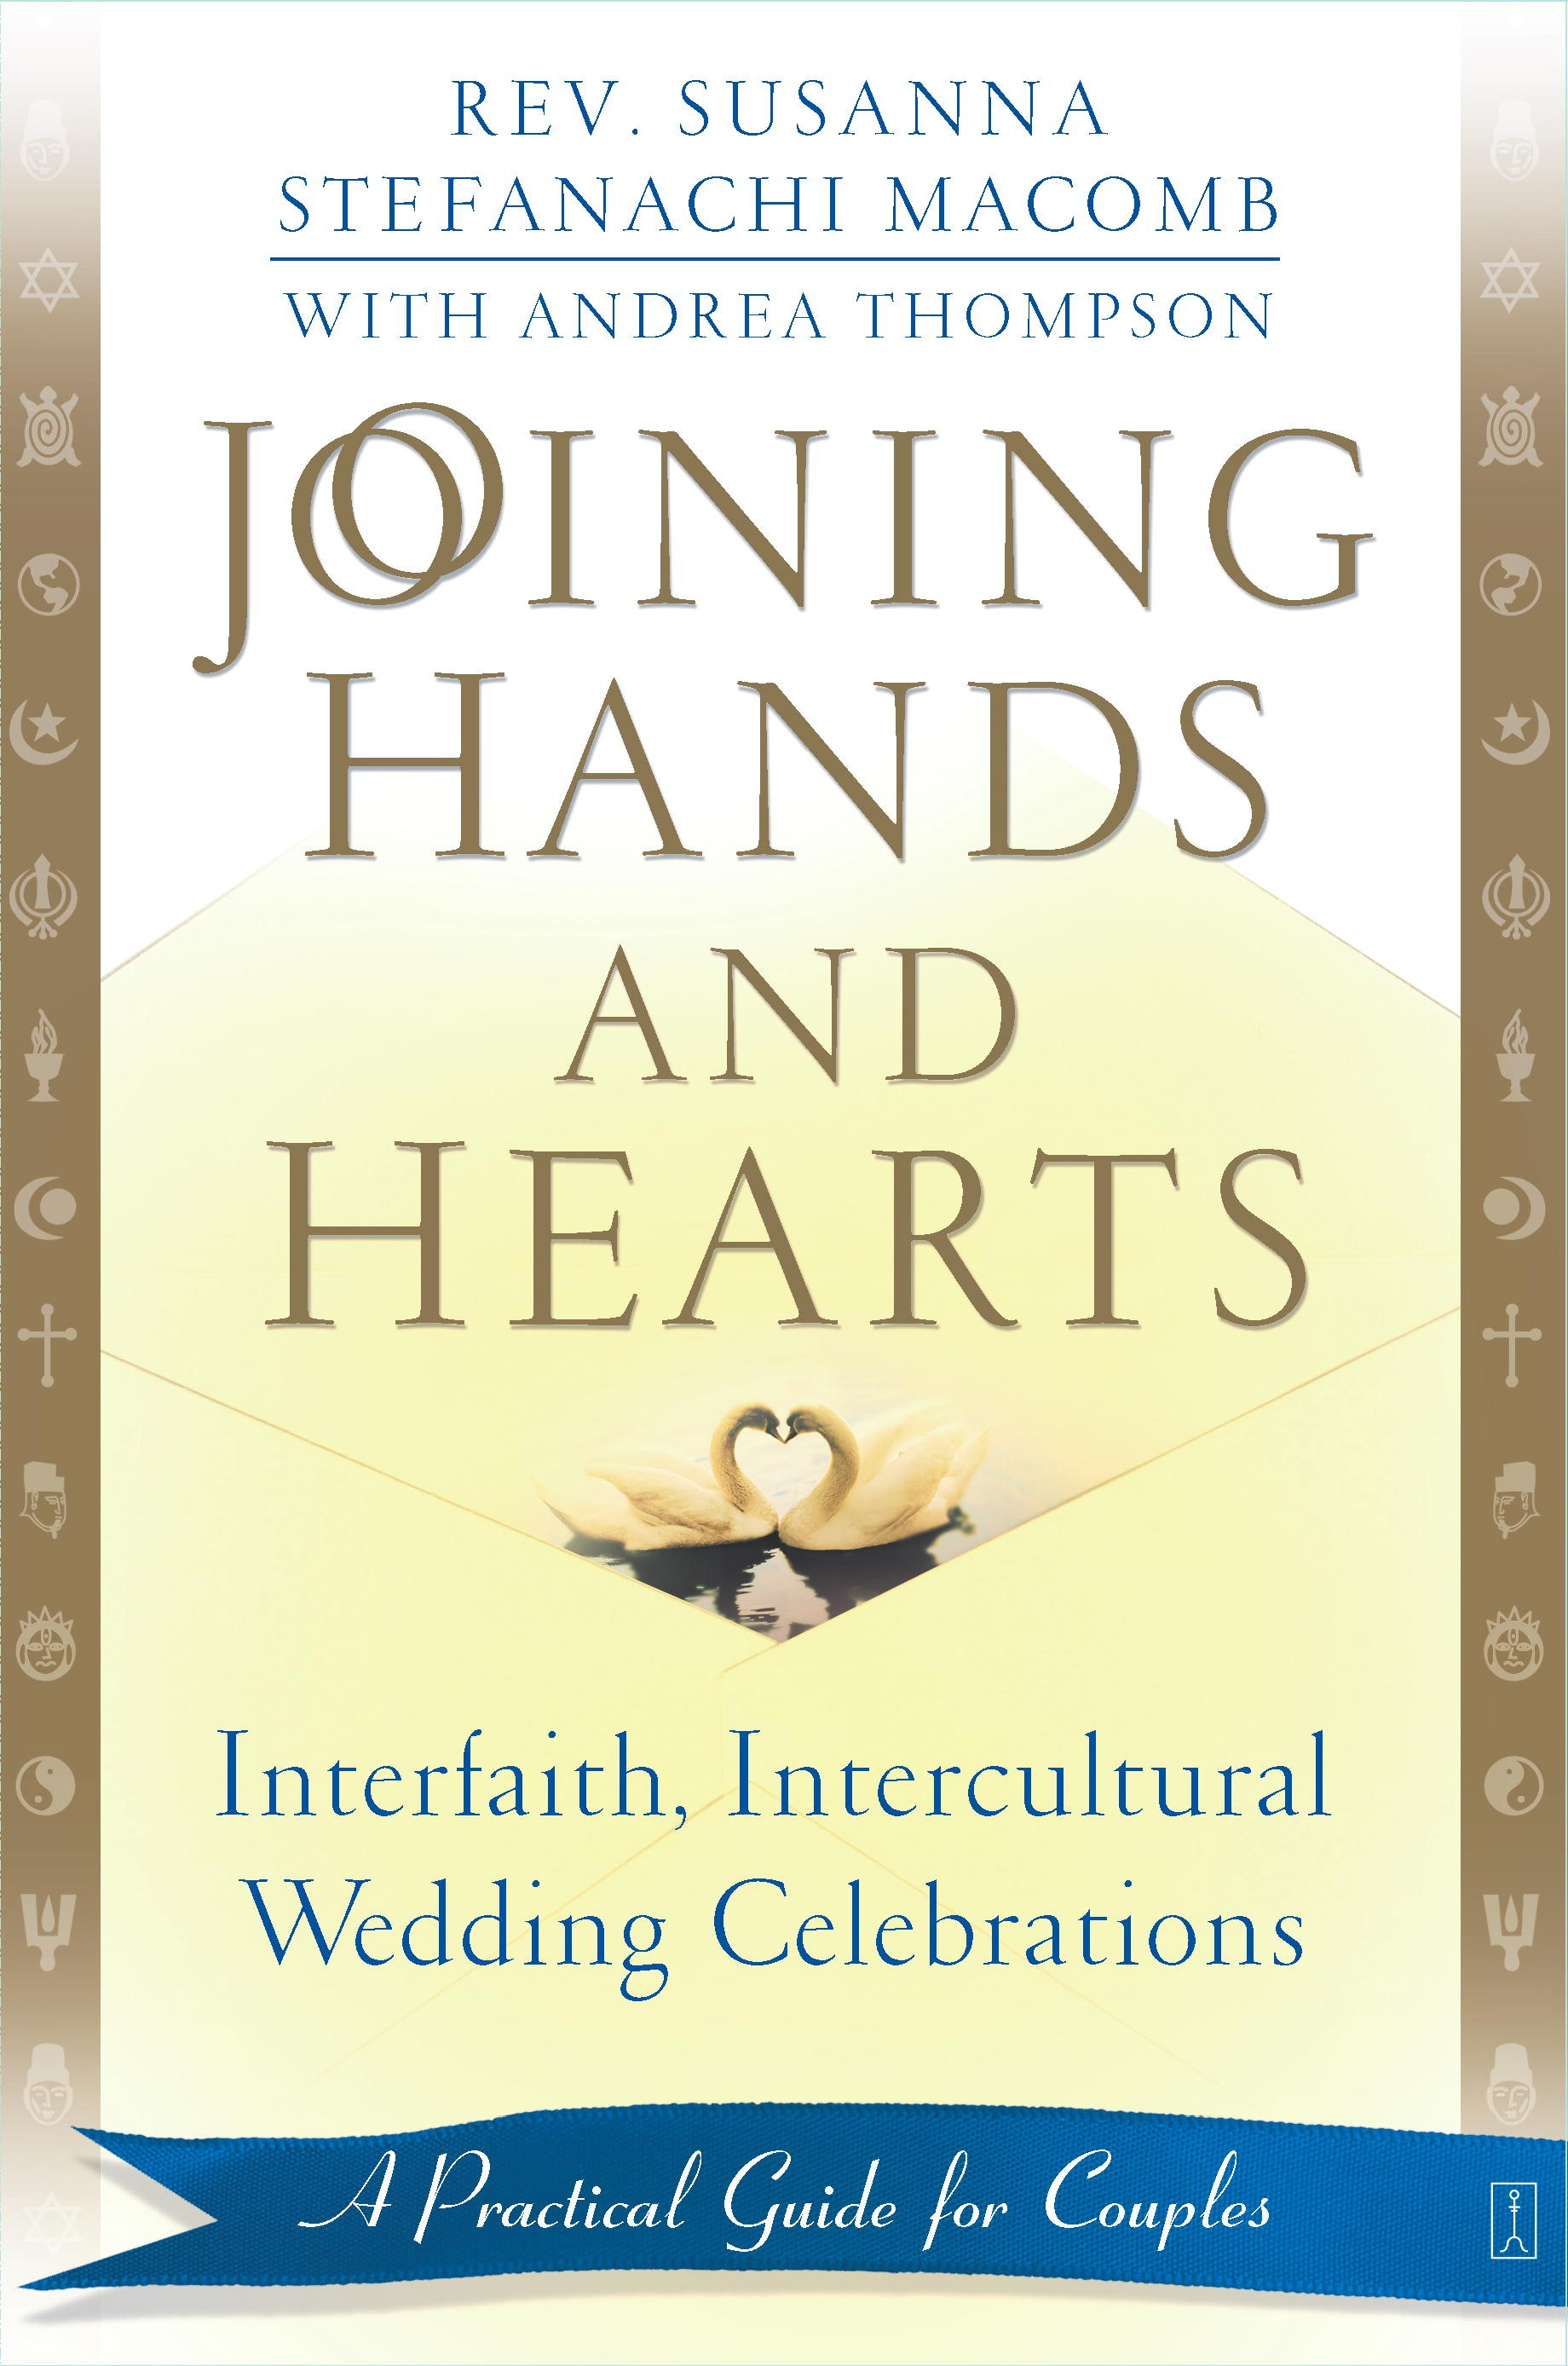 Interfaith intercultural wedding ceremonies books joining hands and hearts interfaith intercultural wedding celebrations a practical guide for couples simon and schuster is for couples of all sciox Image collections